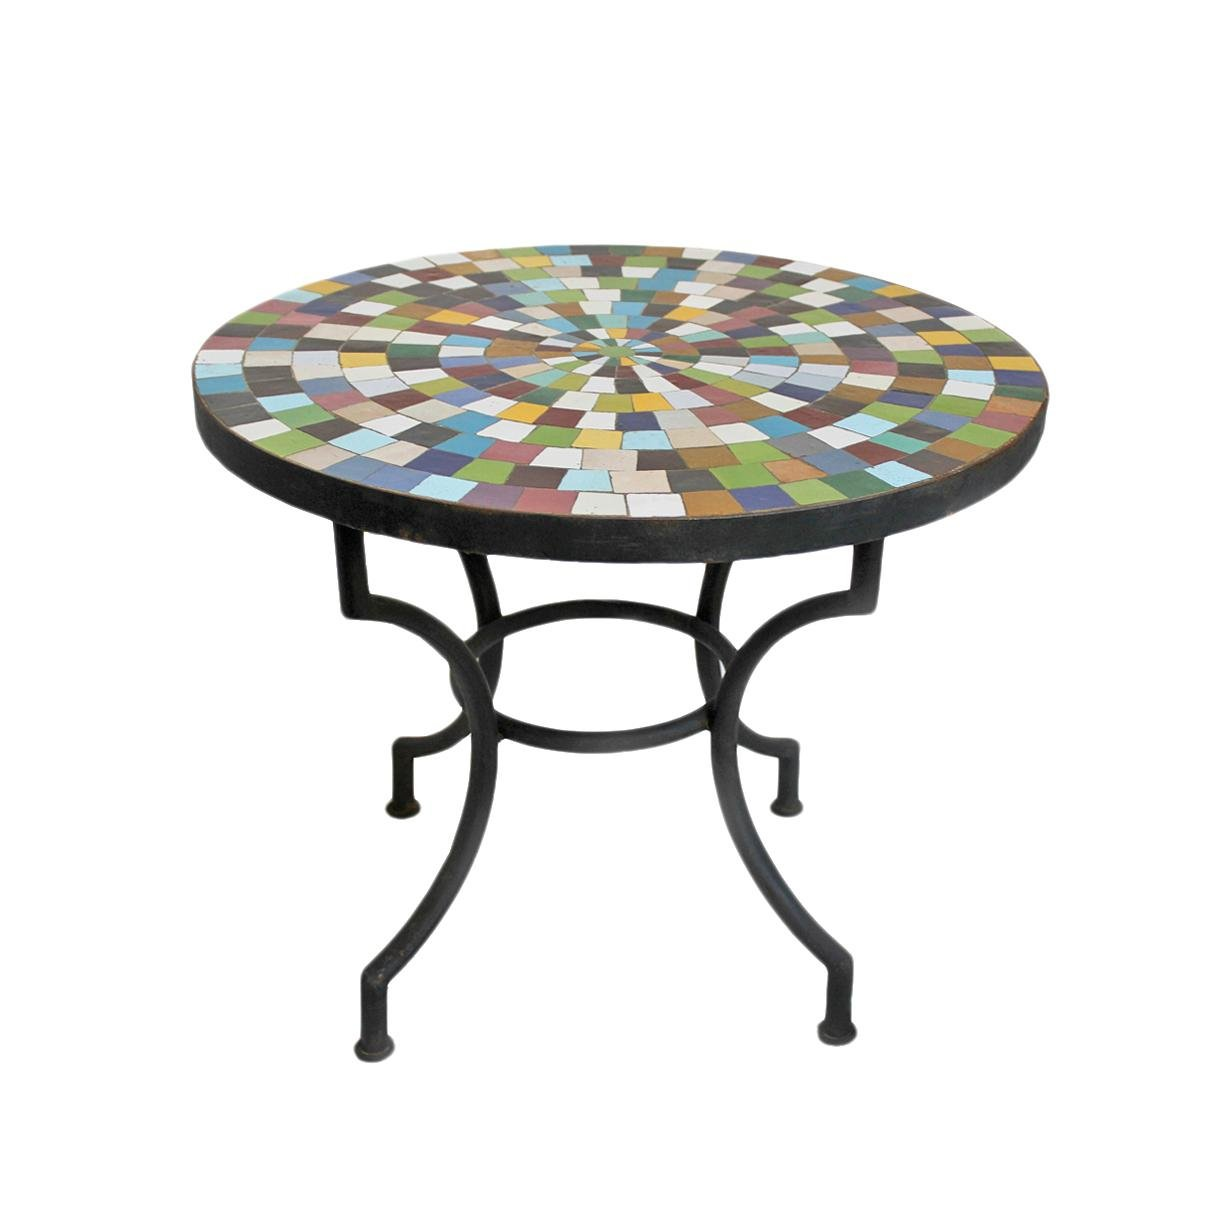 handmade mosaic tile side table chairish outdoor accent tall bistro metal drum storage lucite coffee round industrial baby changing unit with wheels counter drop leaf kitchen and